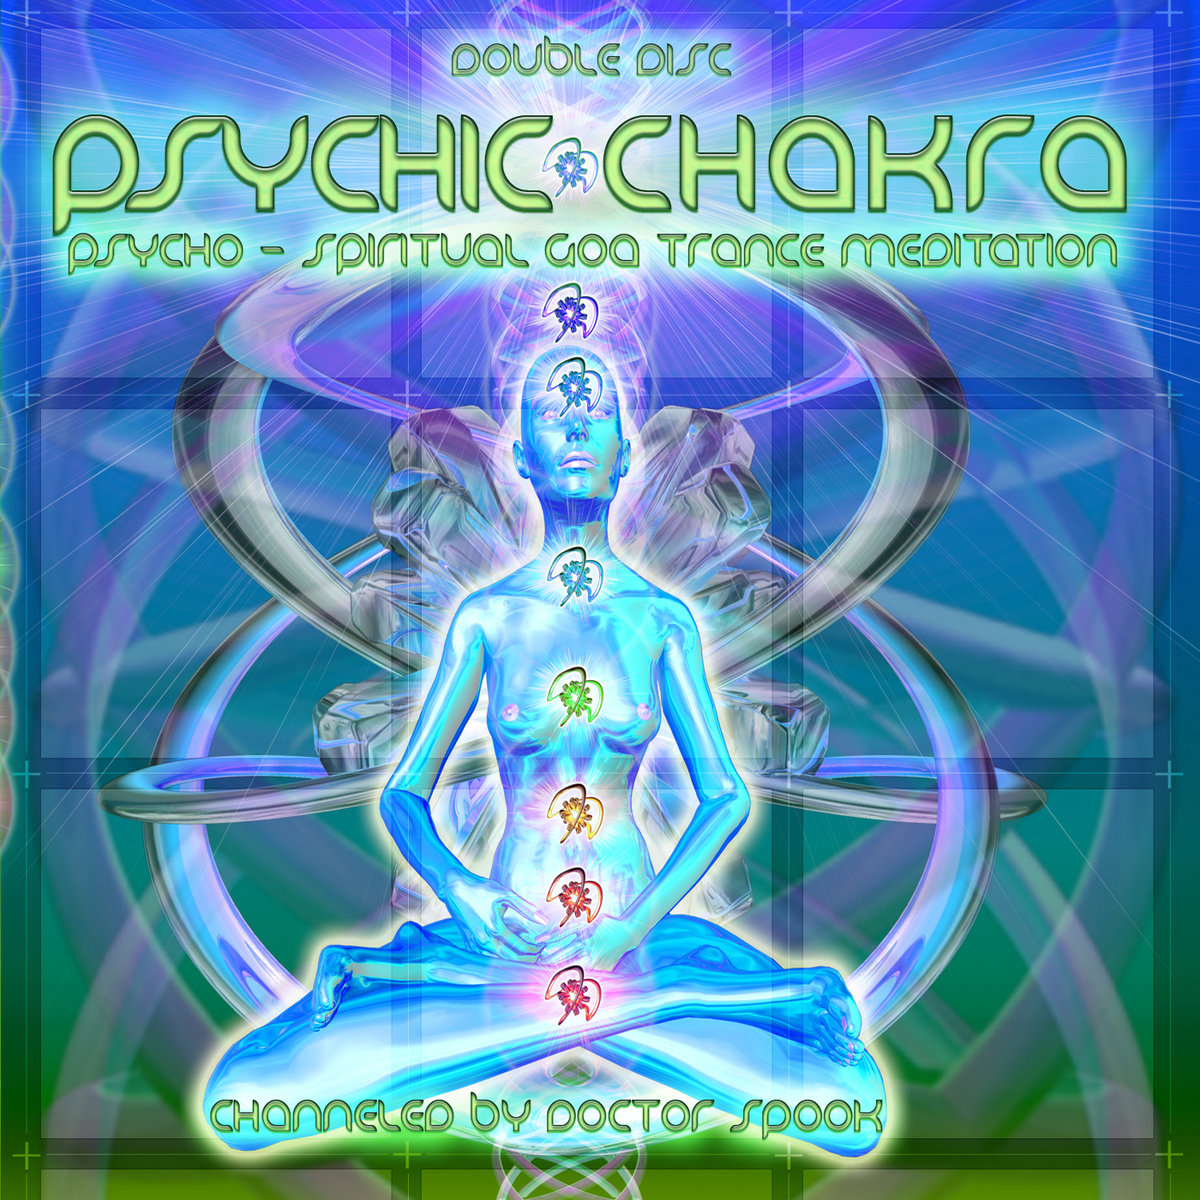 Clone - Dragon Breath @ 'Various Artists - Psychic Chakra (Channeled by Dr. Spook)' album (electronic, psychic chakra)